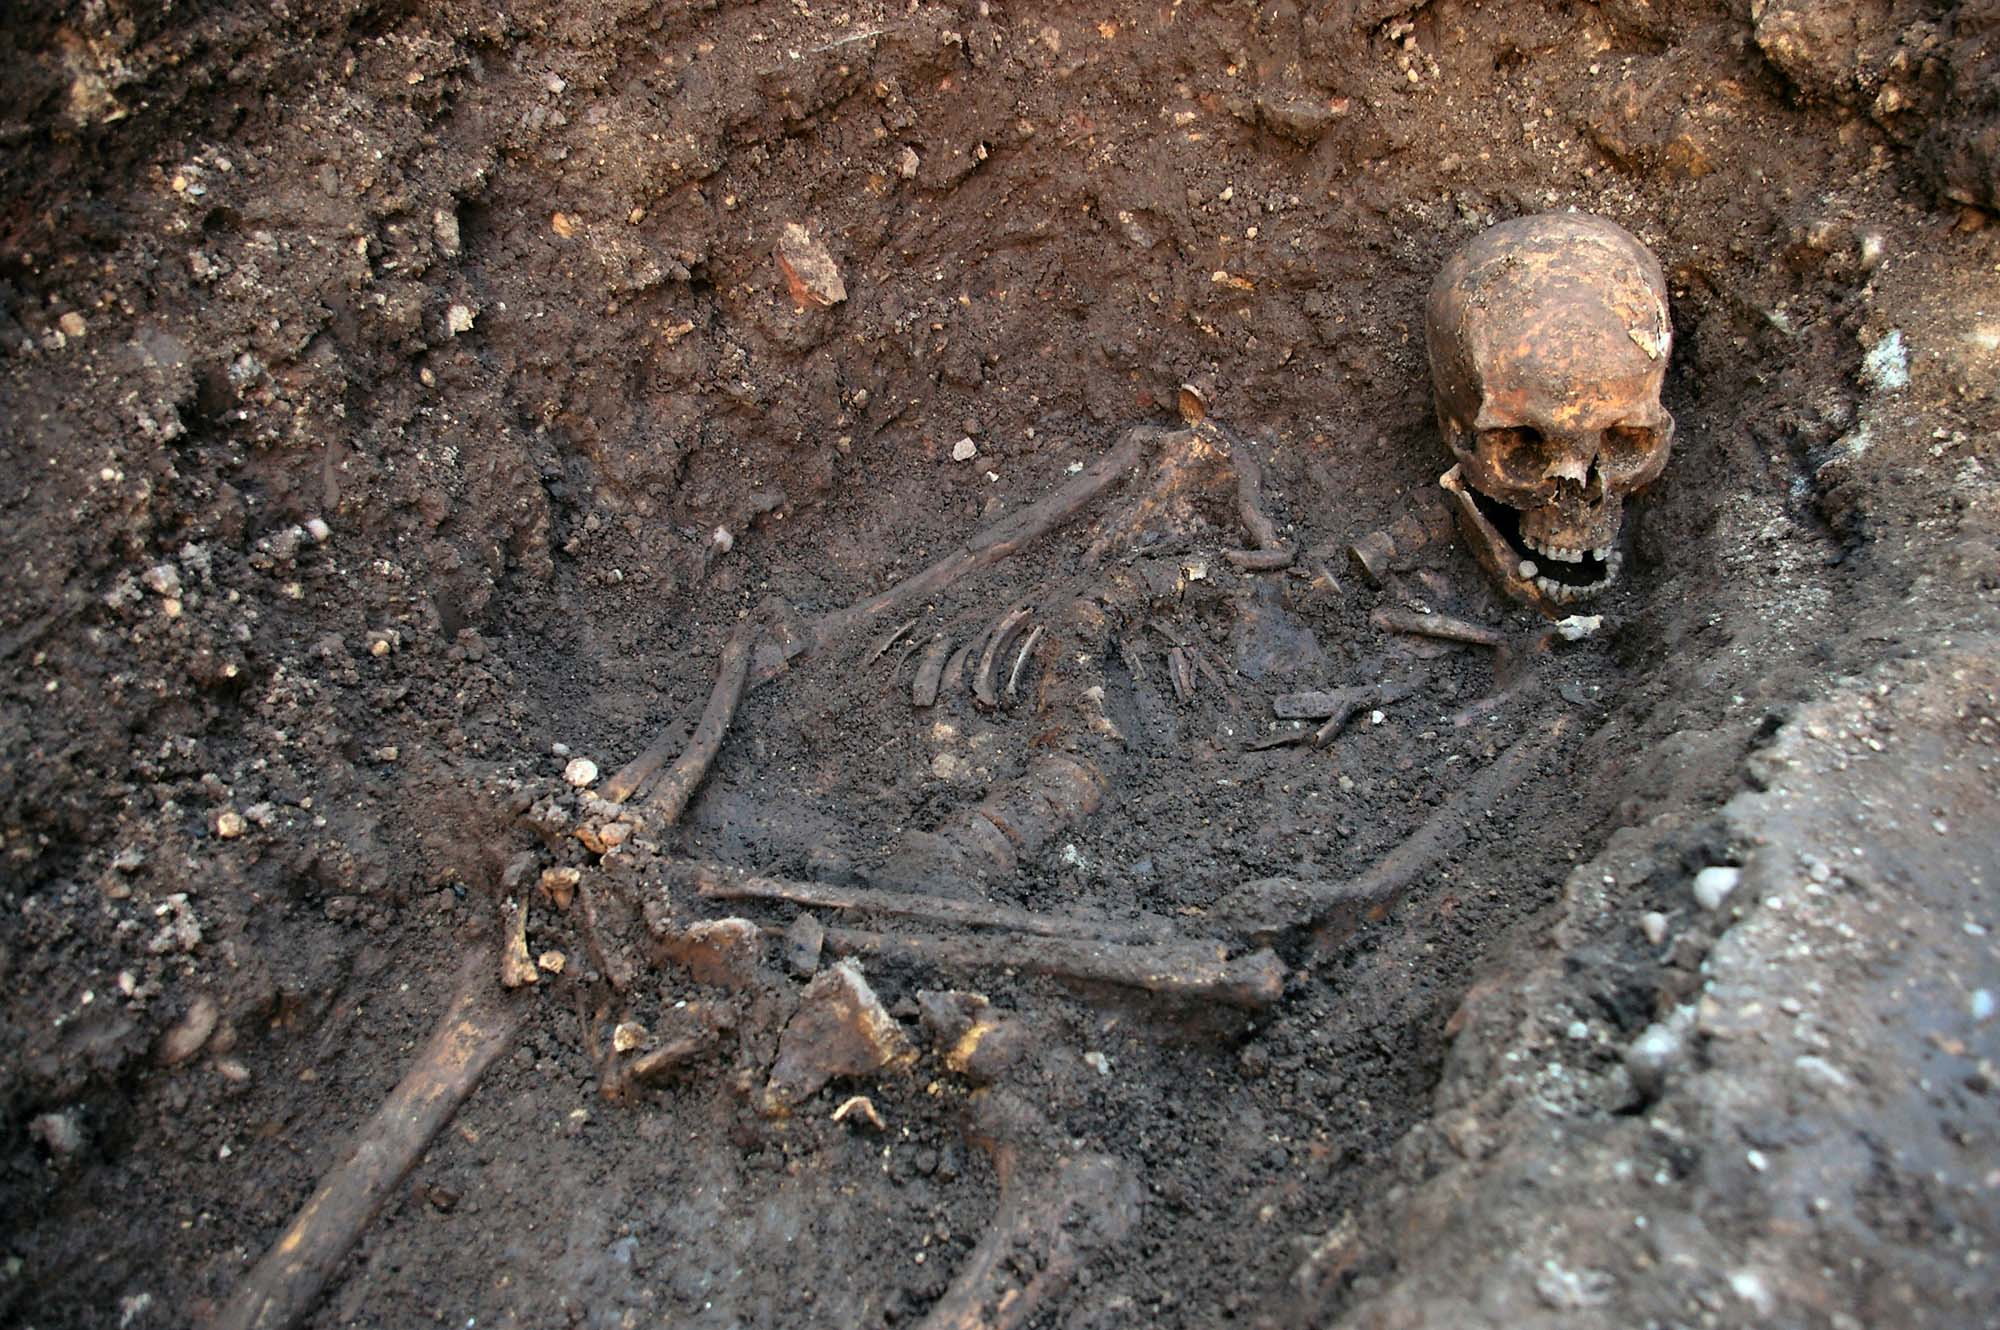 Richard III's remains in situ in his grave shortly after their discovery in 2012 - University of Leicester